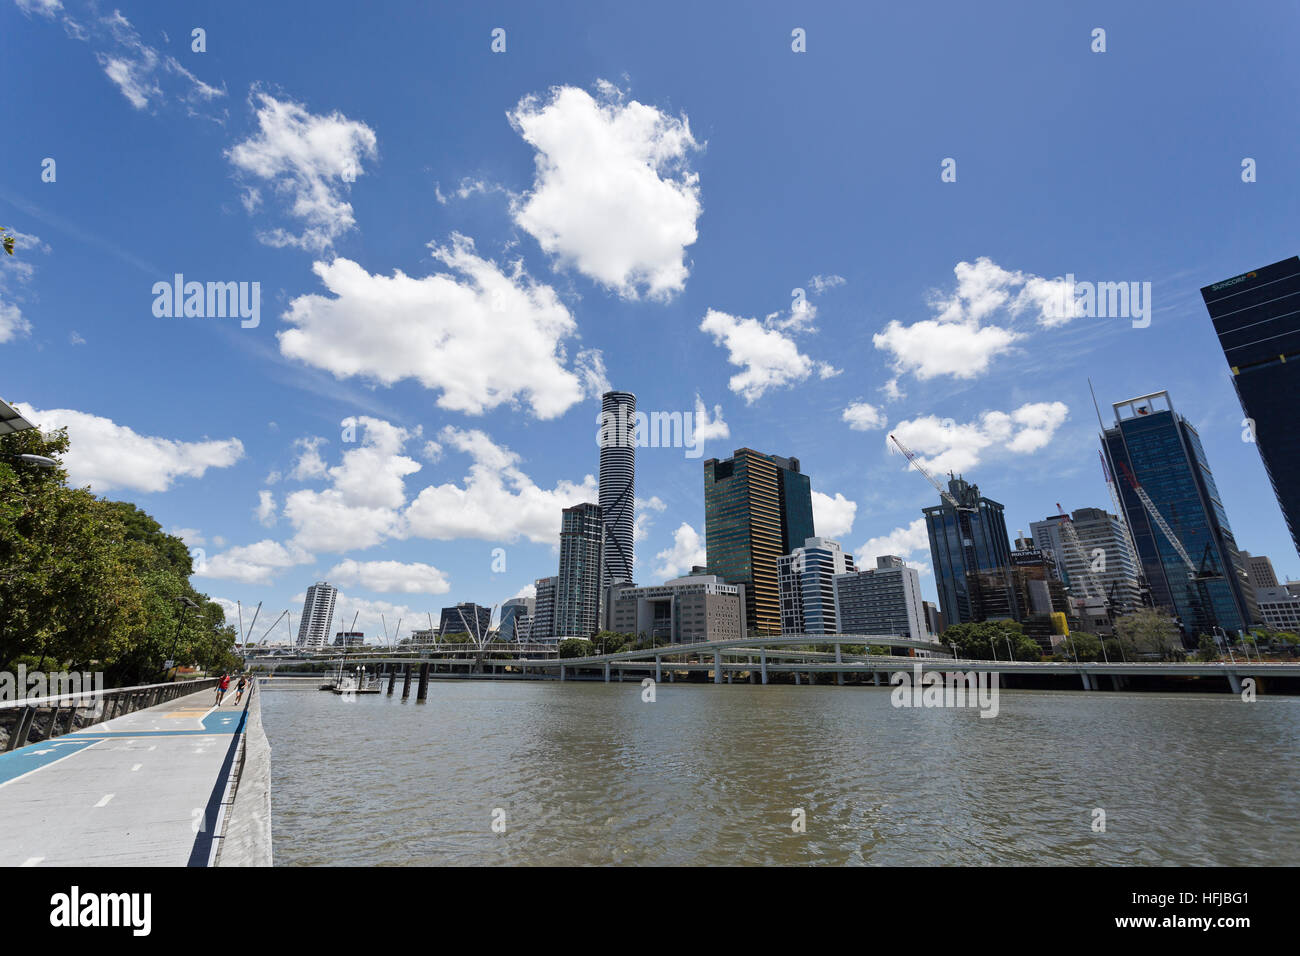 People exercising along the riverside pathway having the Brisbane city in the backgroung - Stock Image